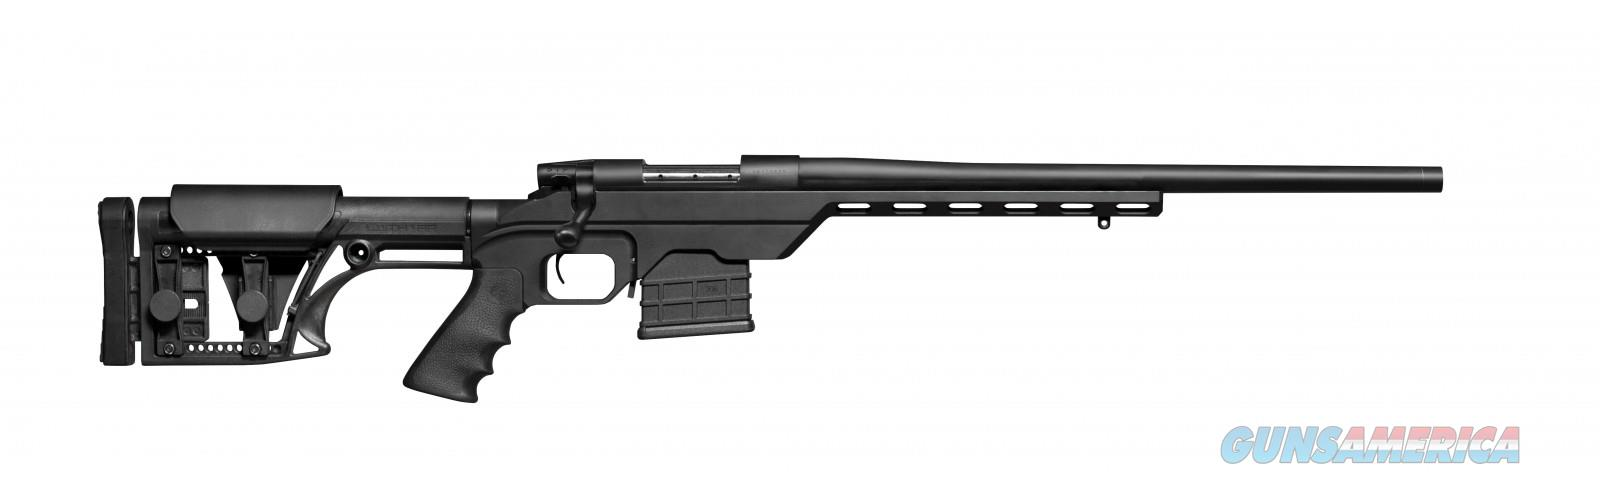 "Weatherby Vanguard Modular Chassis .308 Win 20"" VLR308NR0T  Guns > Rifles > Weatherby Rifles > Tactical"